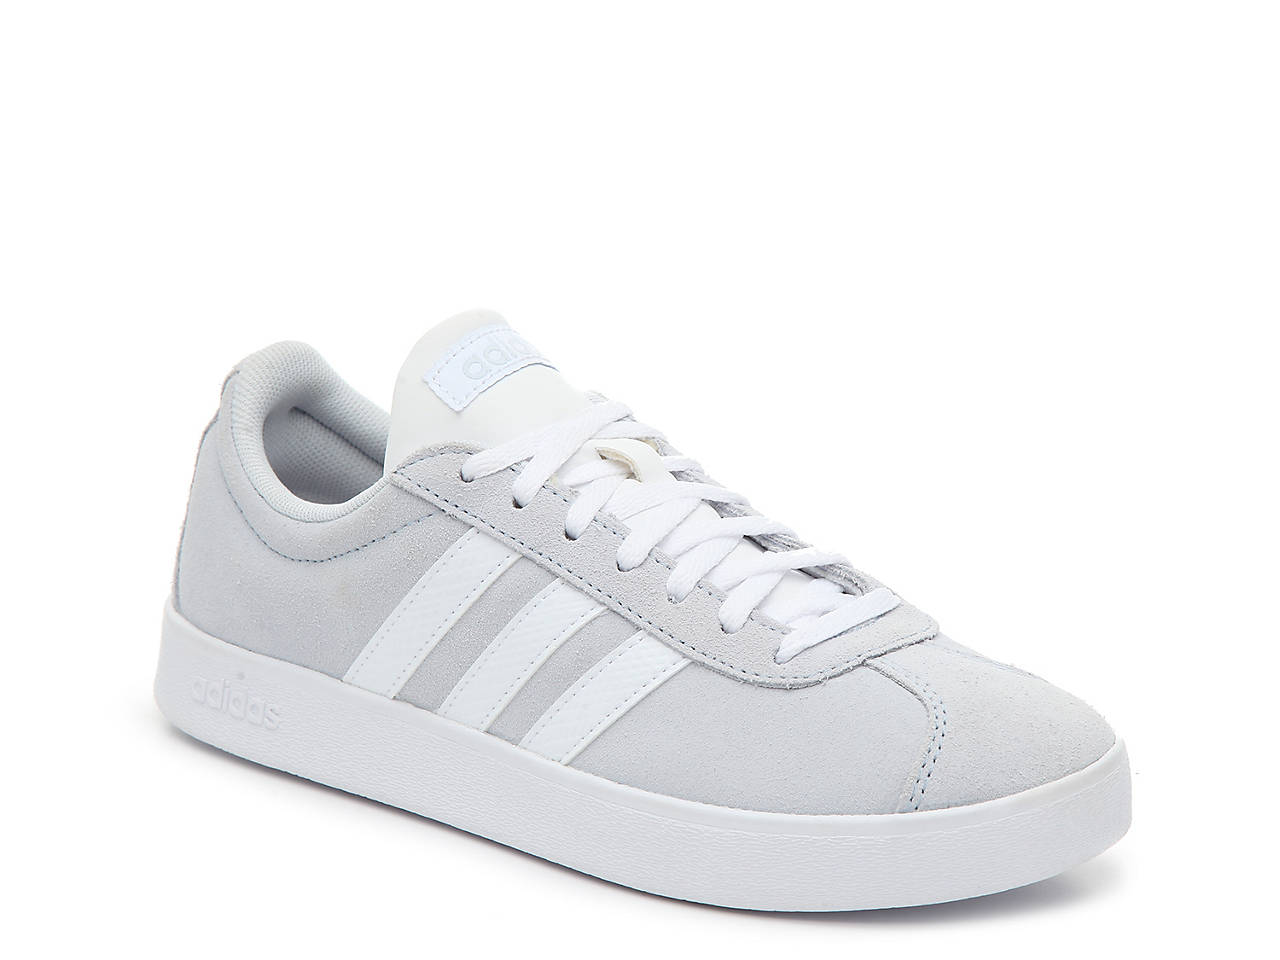 adidas VL Court 2.0 Sneaker - Women s Women s Shoes  c63e8bae4